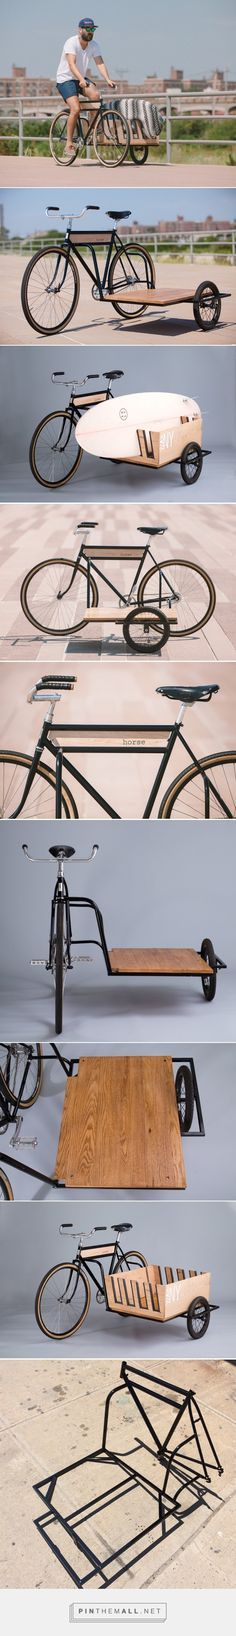 17 beste idee n over lastenfahrrad op pinterest fahrrad aufh ngen bikeport en garagendach. Black Bedroom Furniture Sets. Home Design Ideas